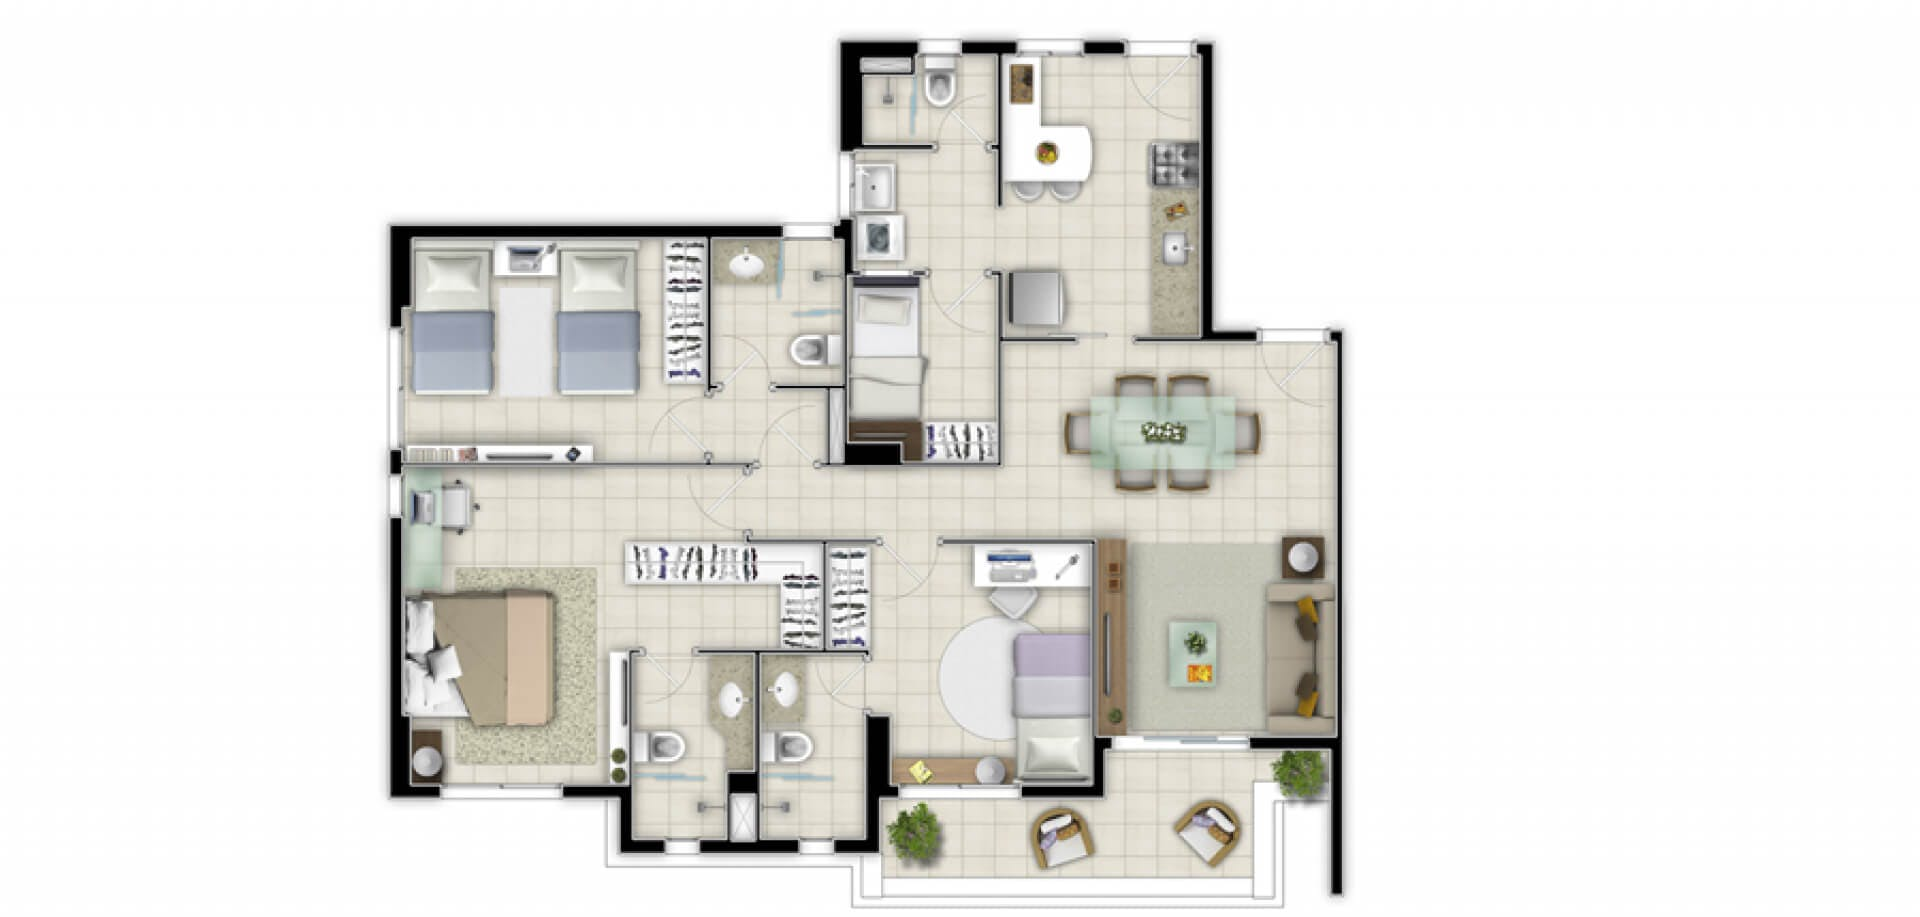 Planta do Bacara. floorplan